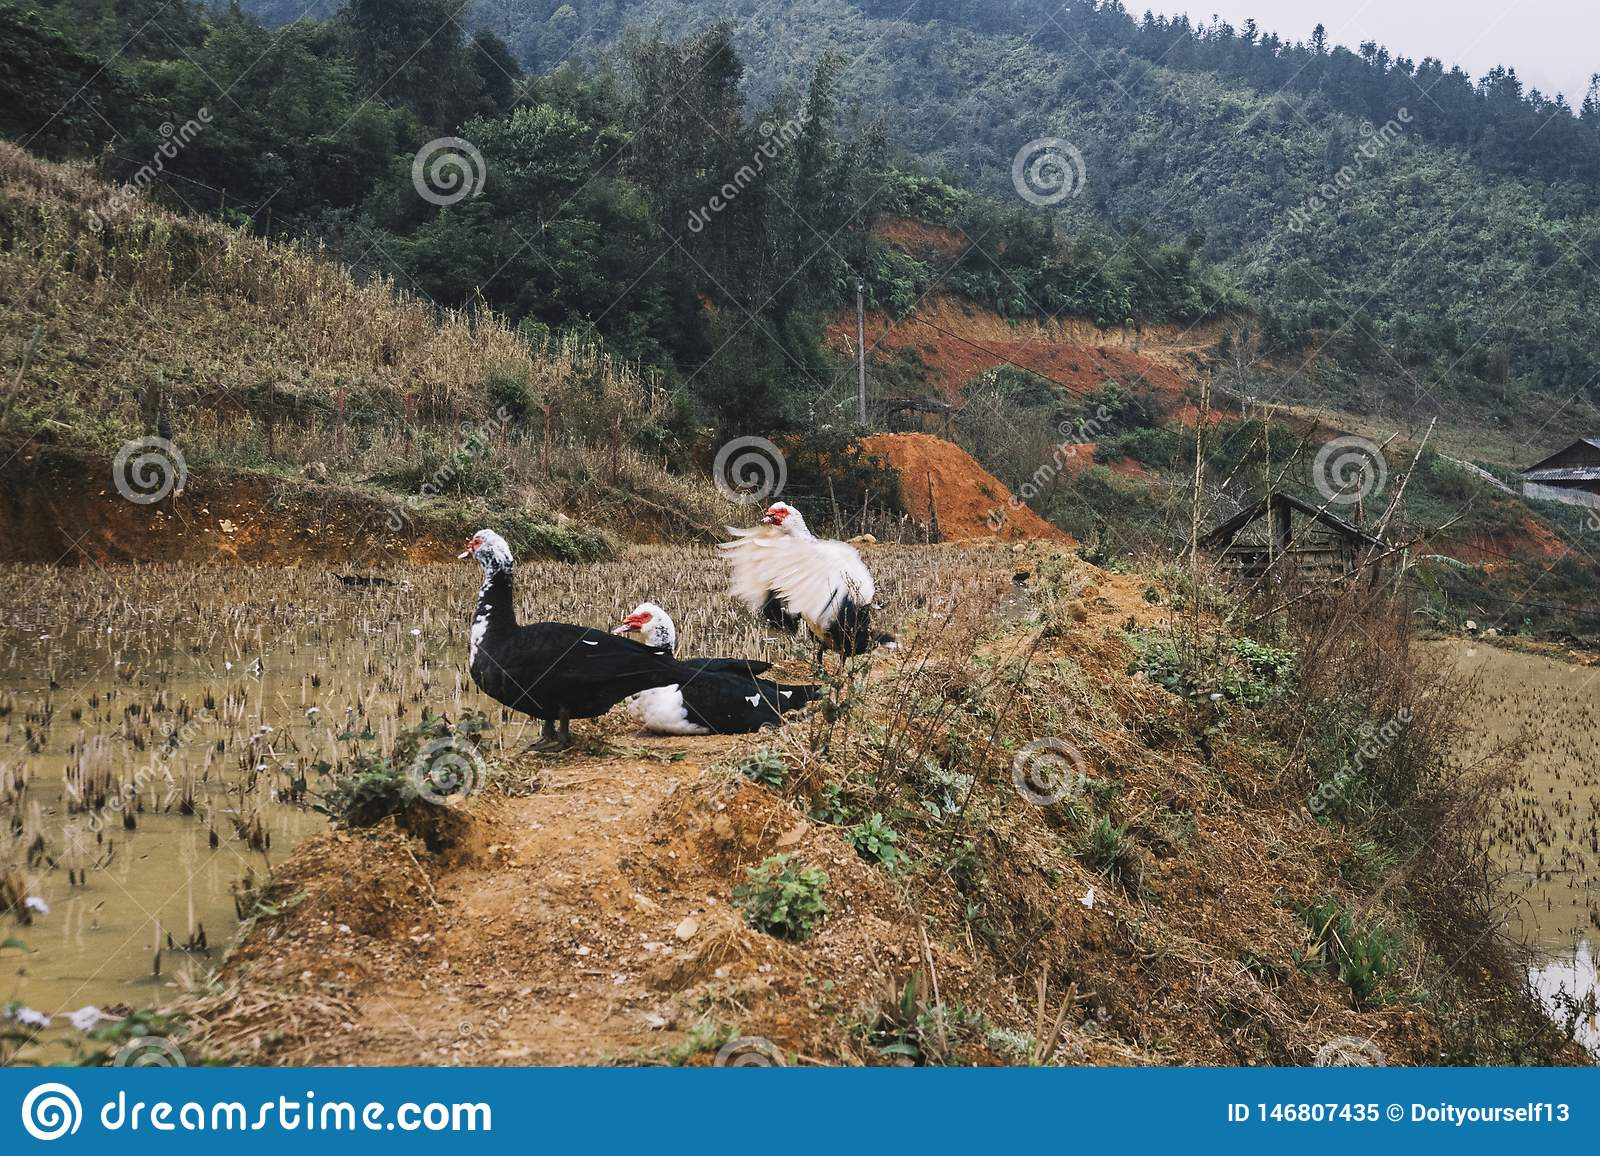 black and white Muskovy ducks standing in water on terraced rice fields in Northern Vietnam during a grey misty day